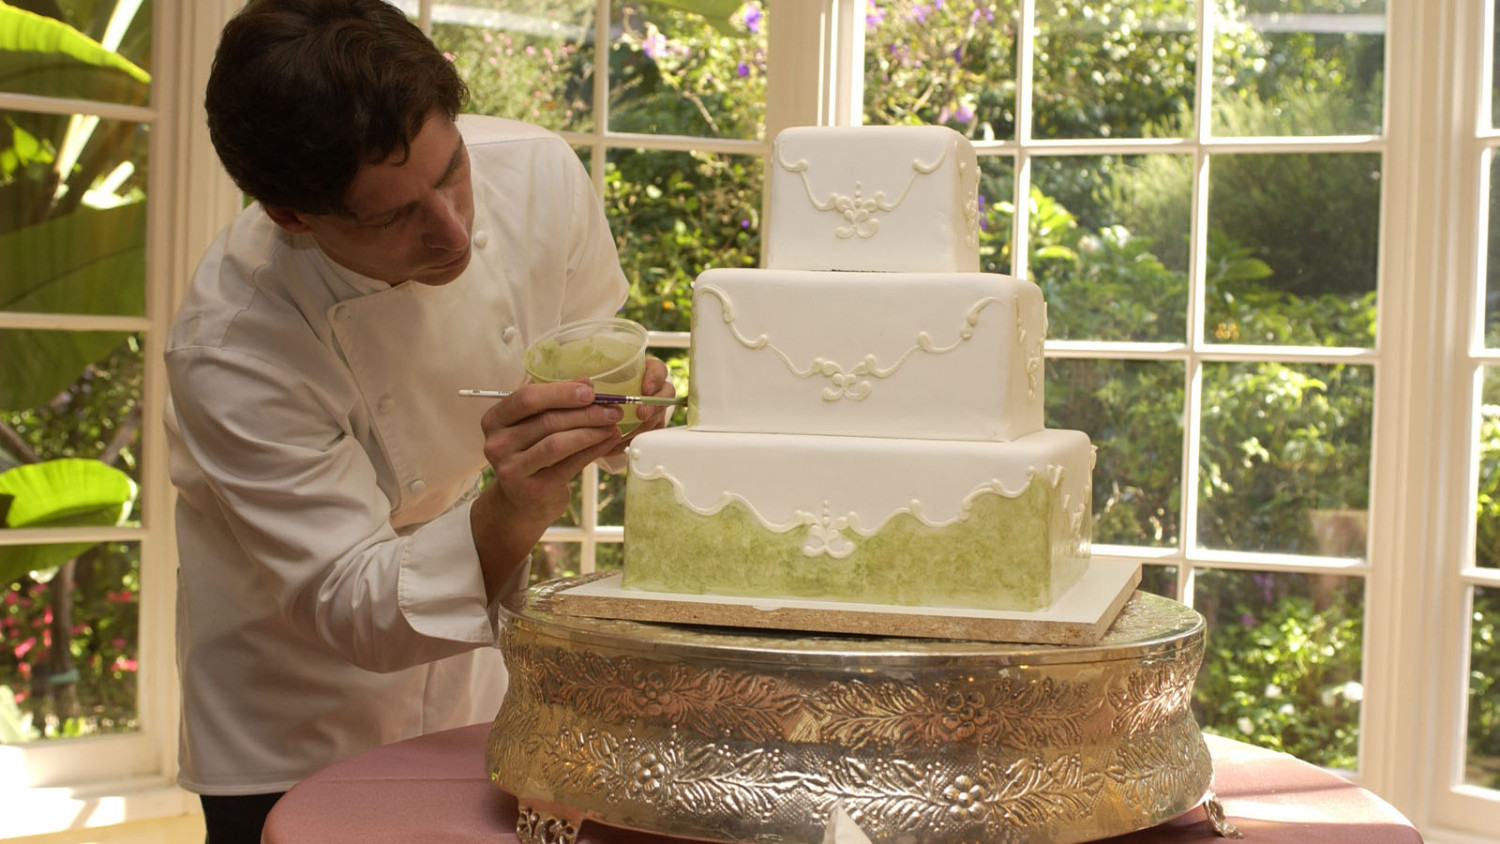 Wedding Cakes Denver  Top Places For Wedding Cakes In Denver CBS Denver